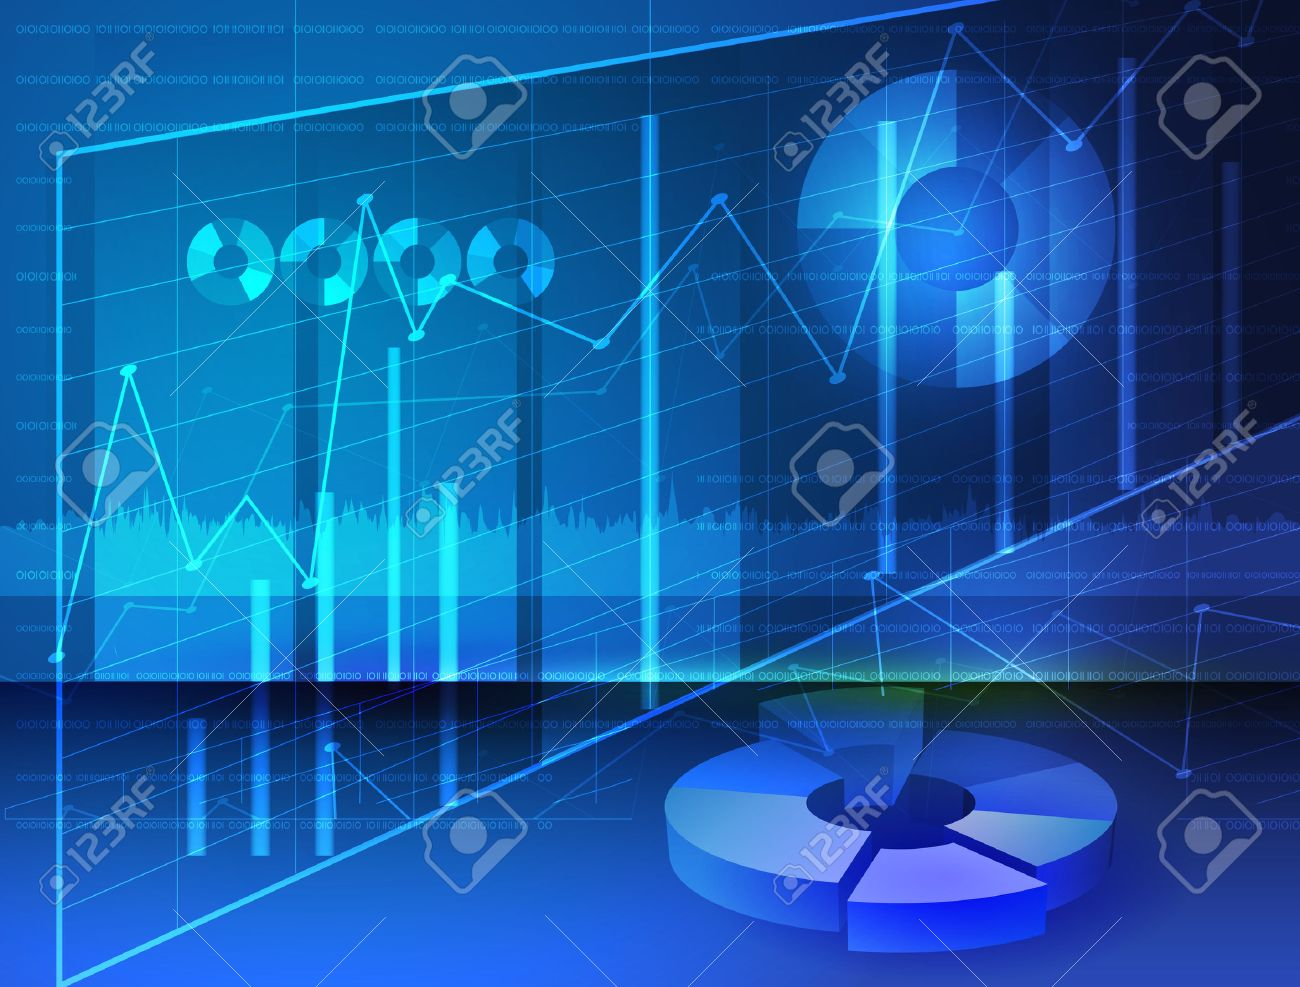 Abstract Diagrams,Stock media Image digital graphs with blue background - 42337974